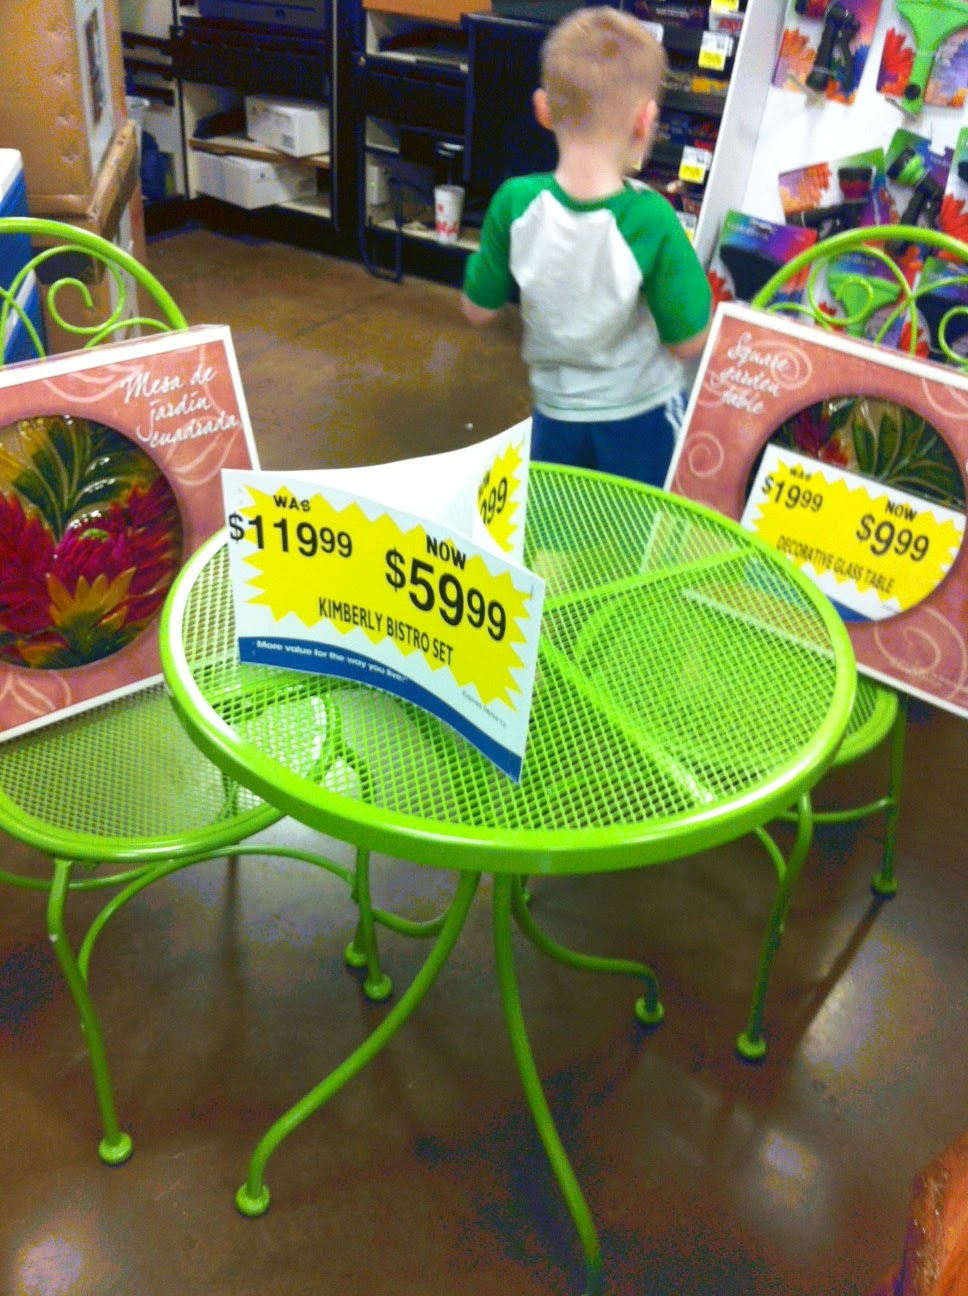 Kroger: Patio Sets, Grills, Tables Etc. Clearance!